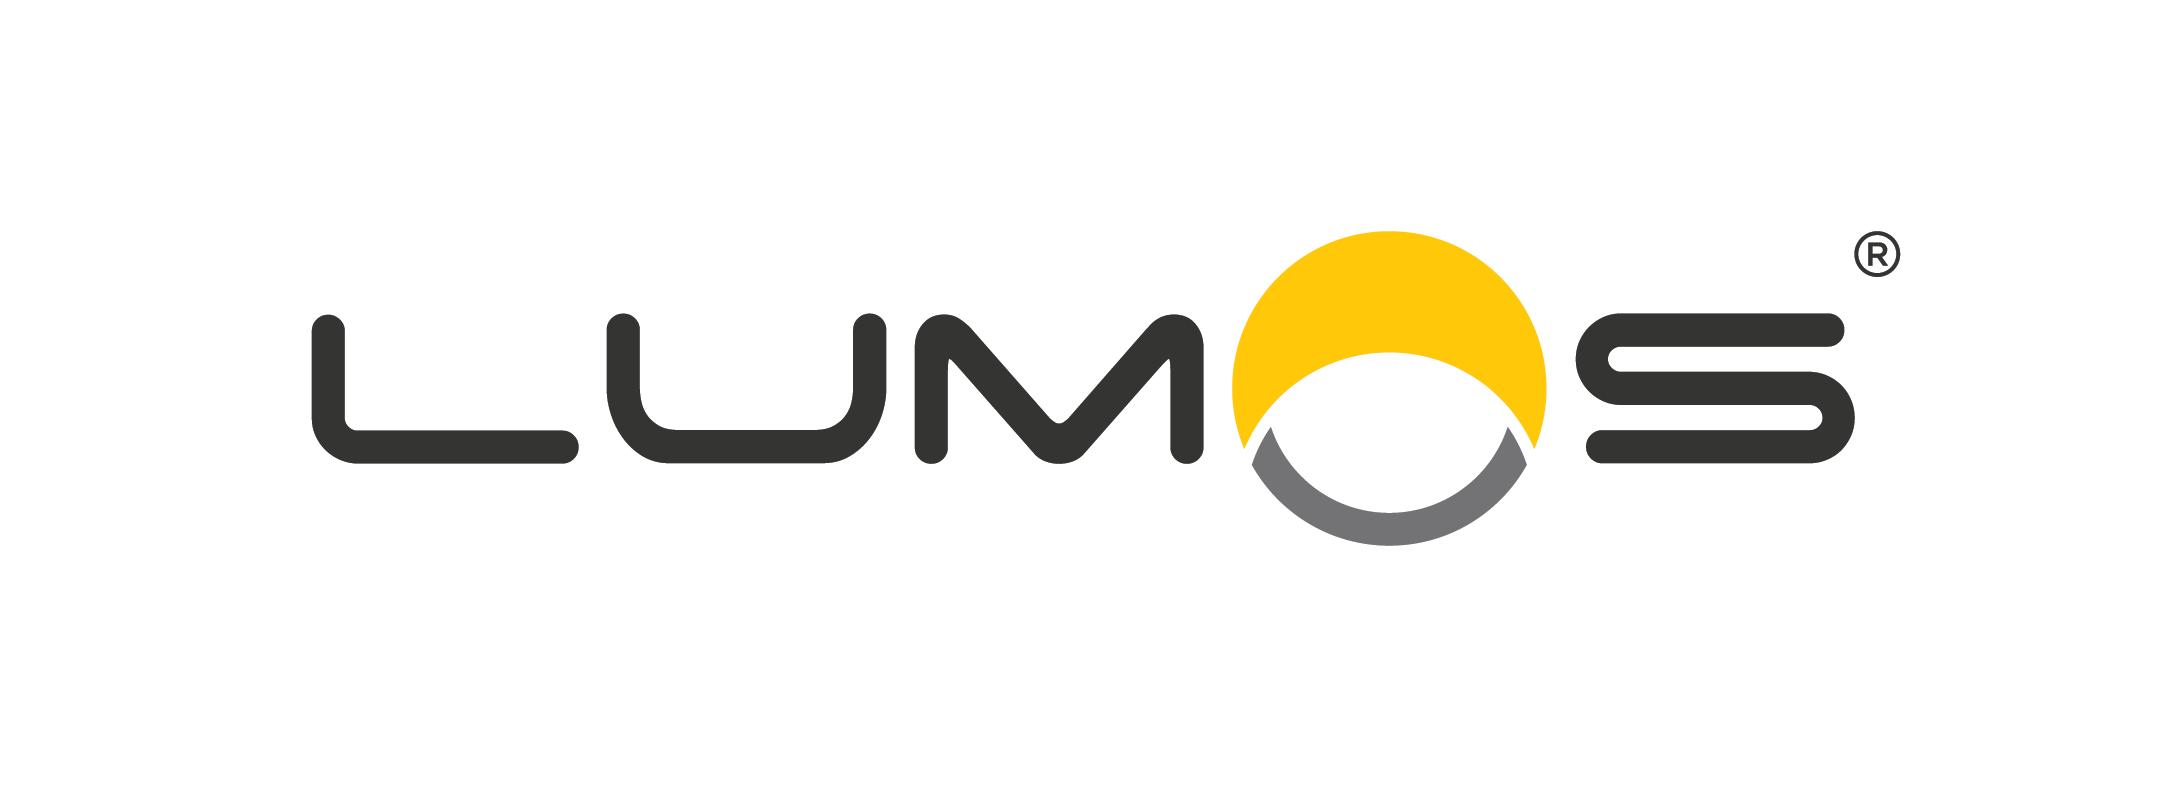 Image result for lumos helmet logo